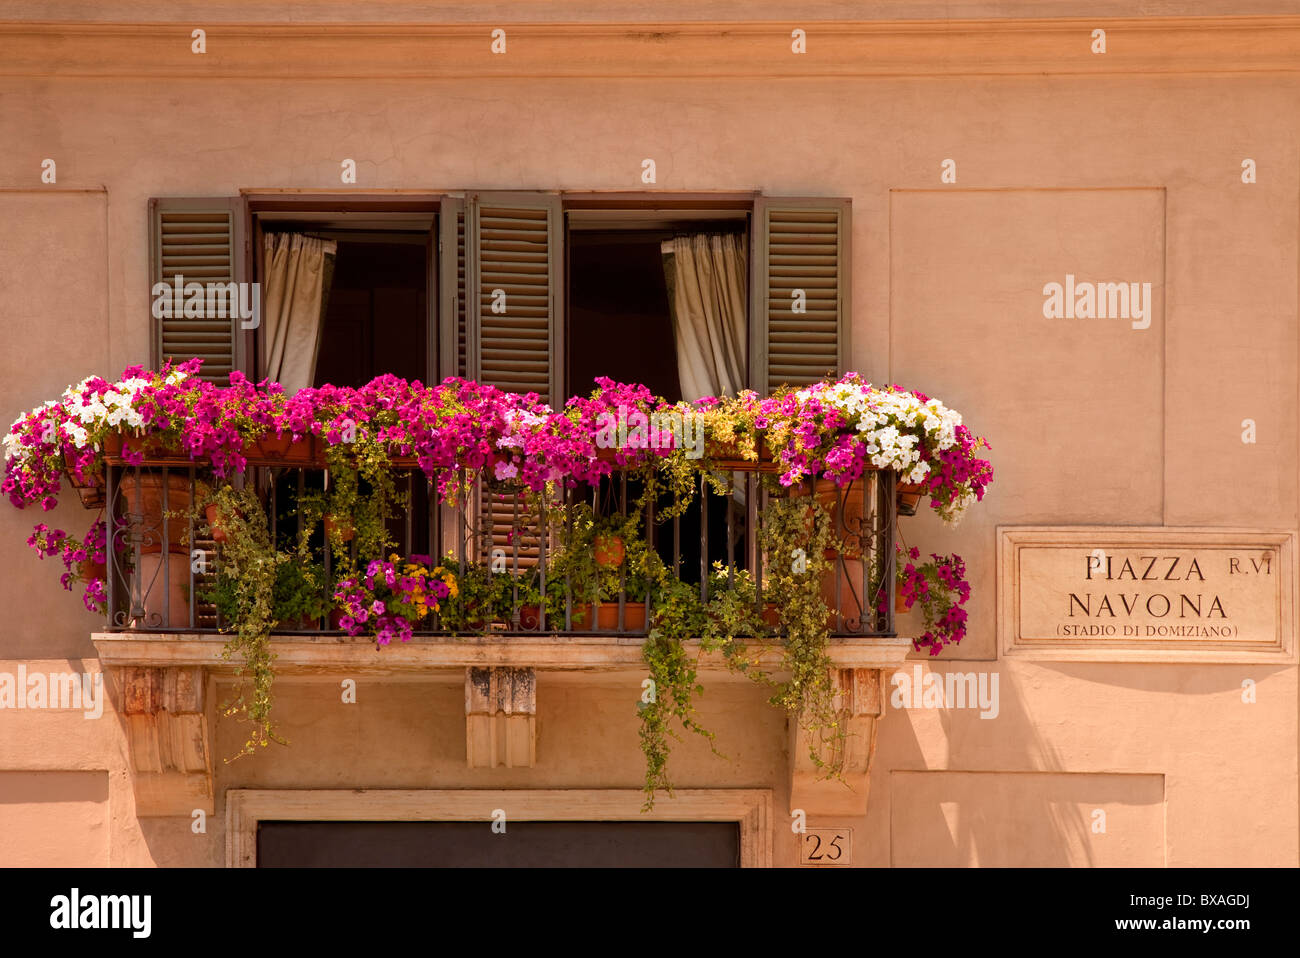 Flowers blooming on a balcony overlooking Piazza Navona in Rome, Lazio Italy - Stock Image